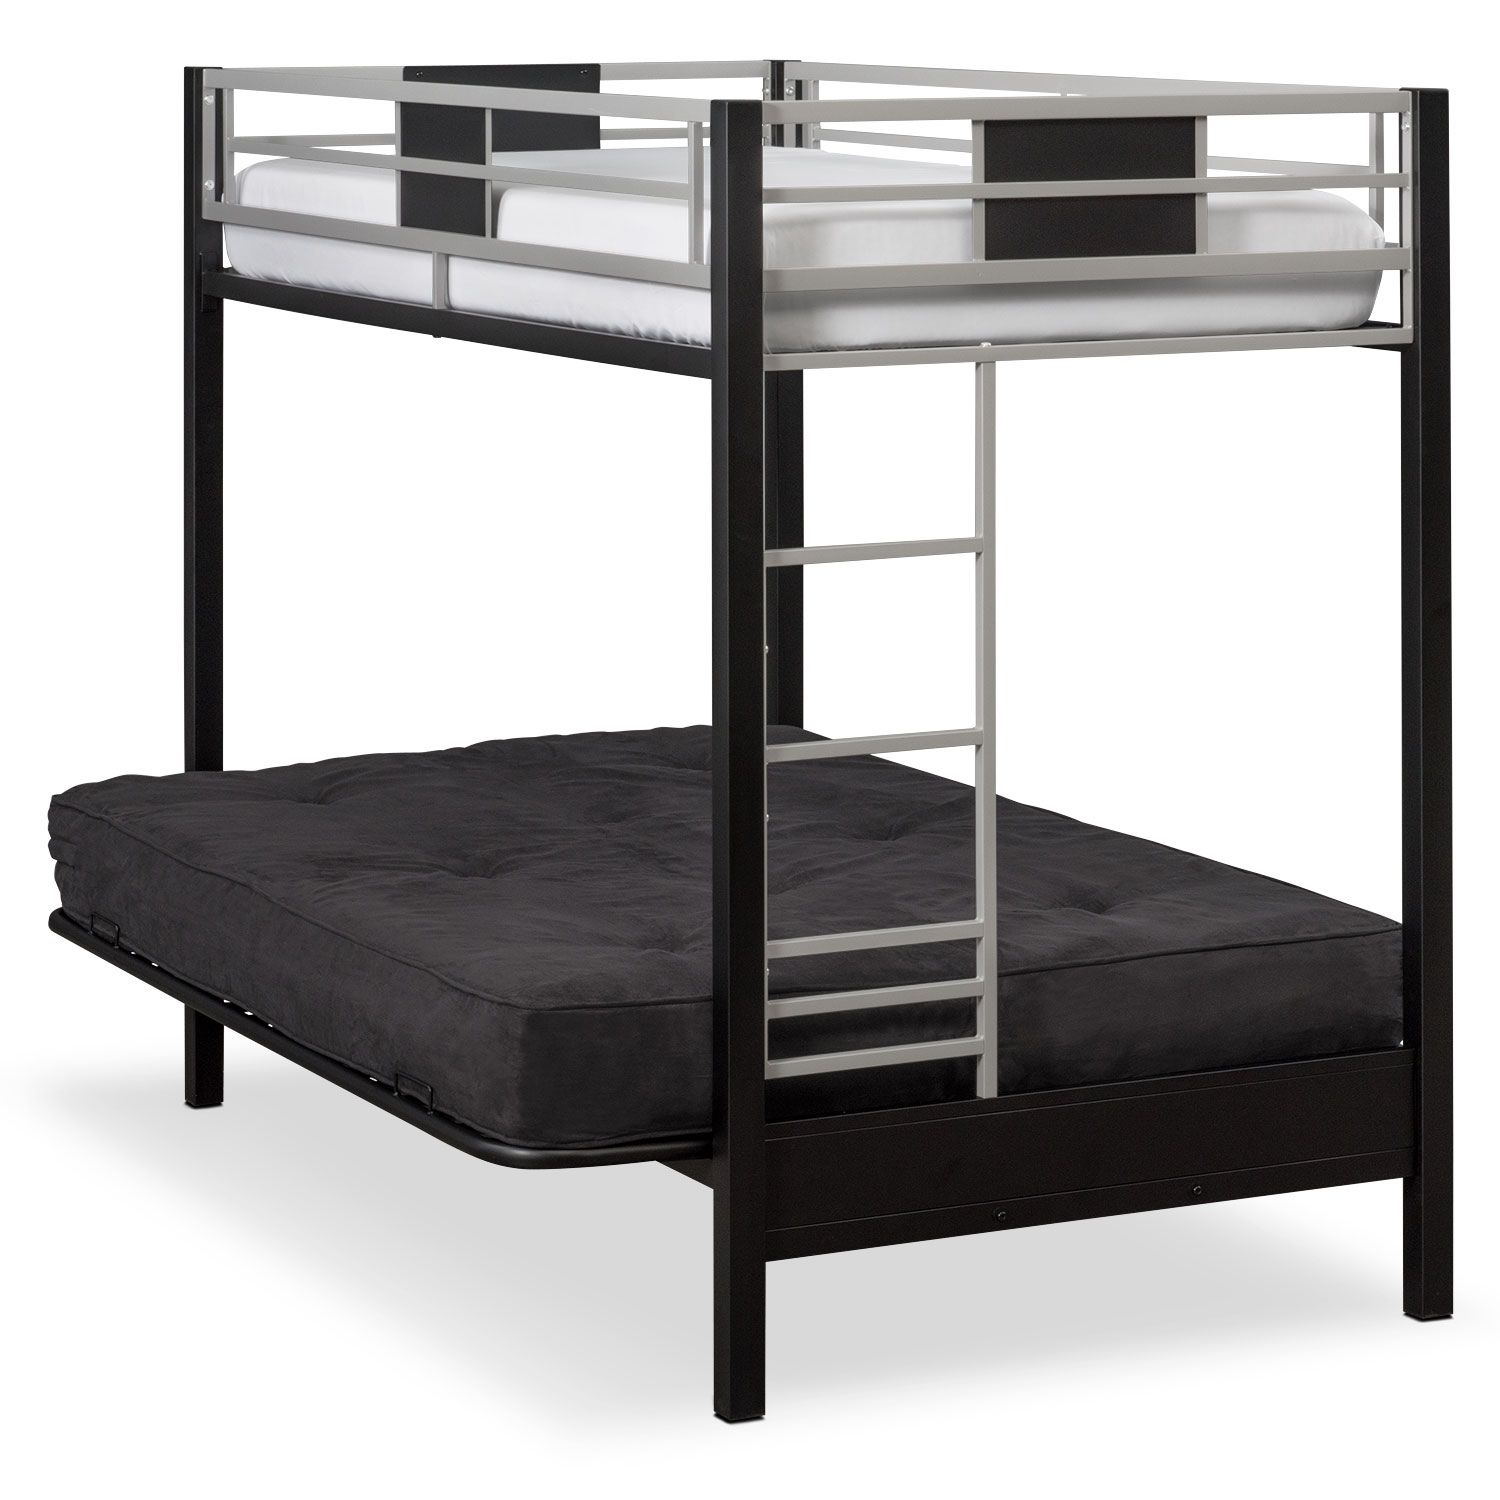 Futon Bunk Bed Black House Painting Budgeting